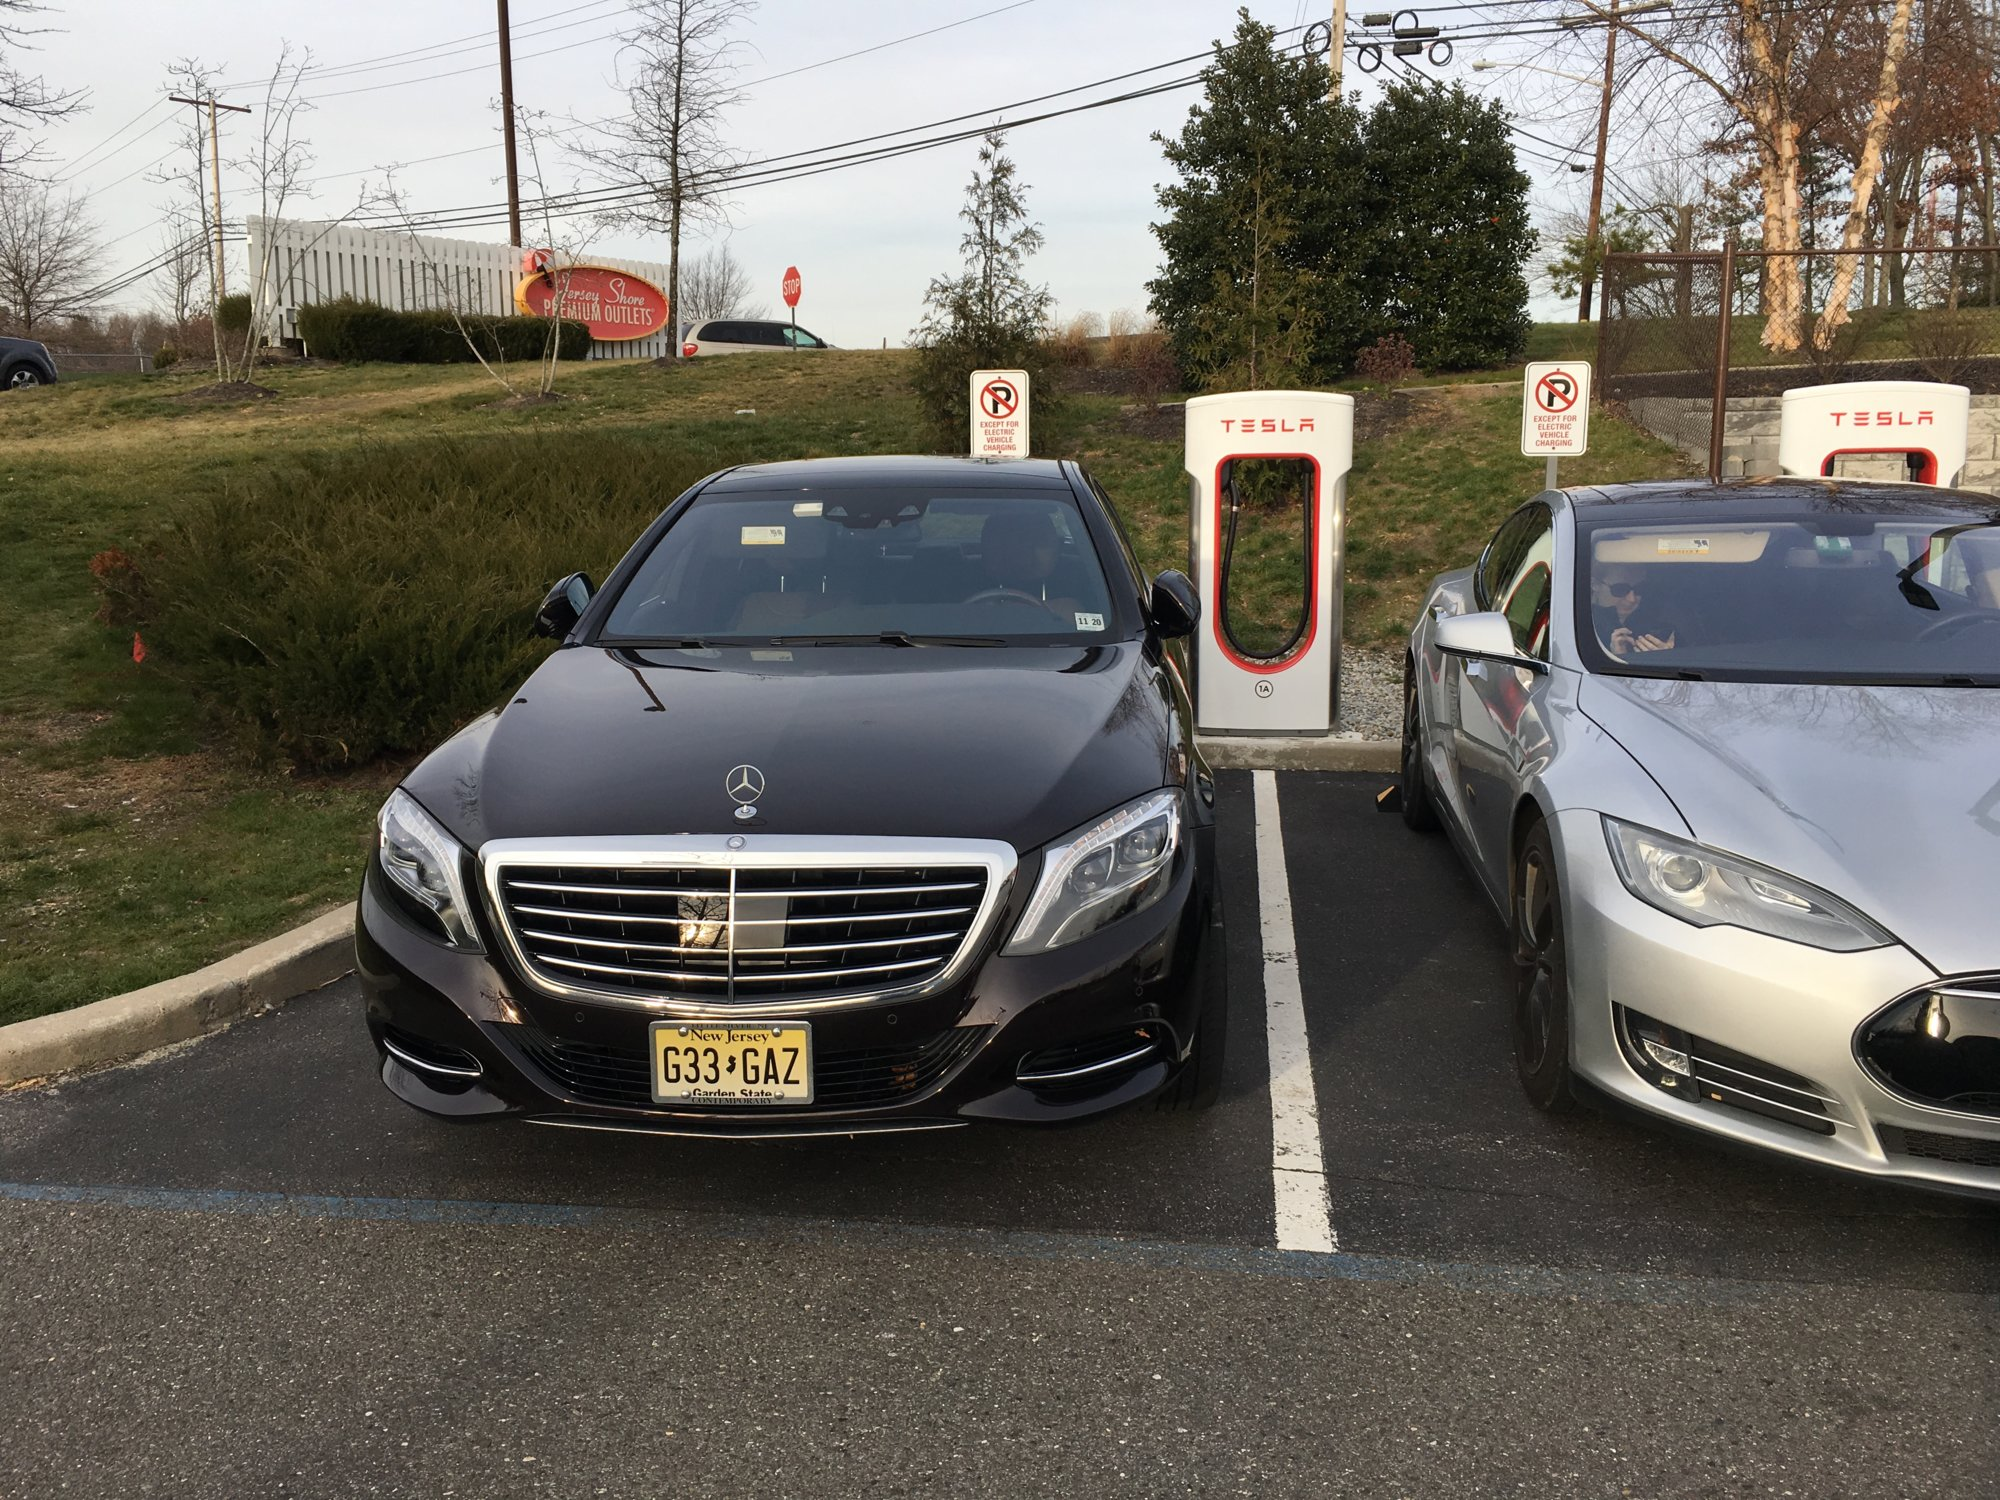 tinton falls nj supercharger 12-23-16-3pm.jpg